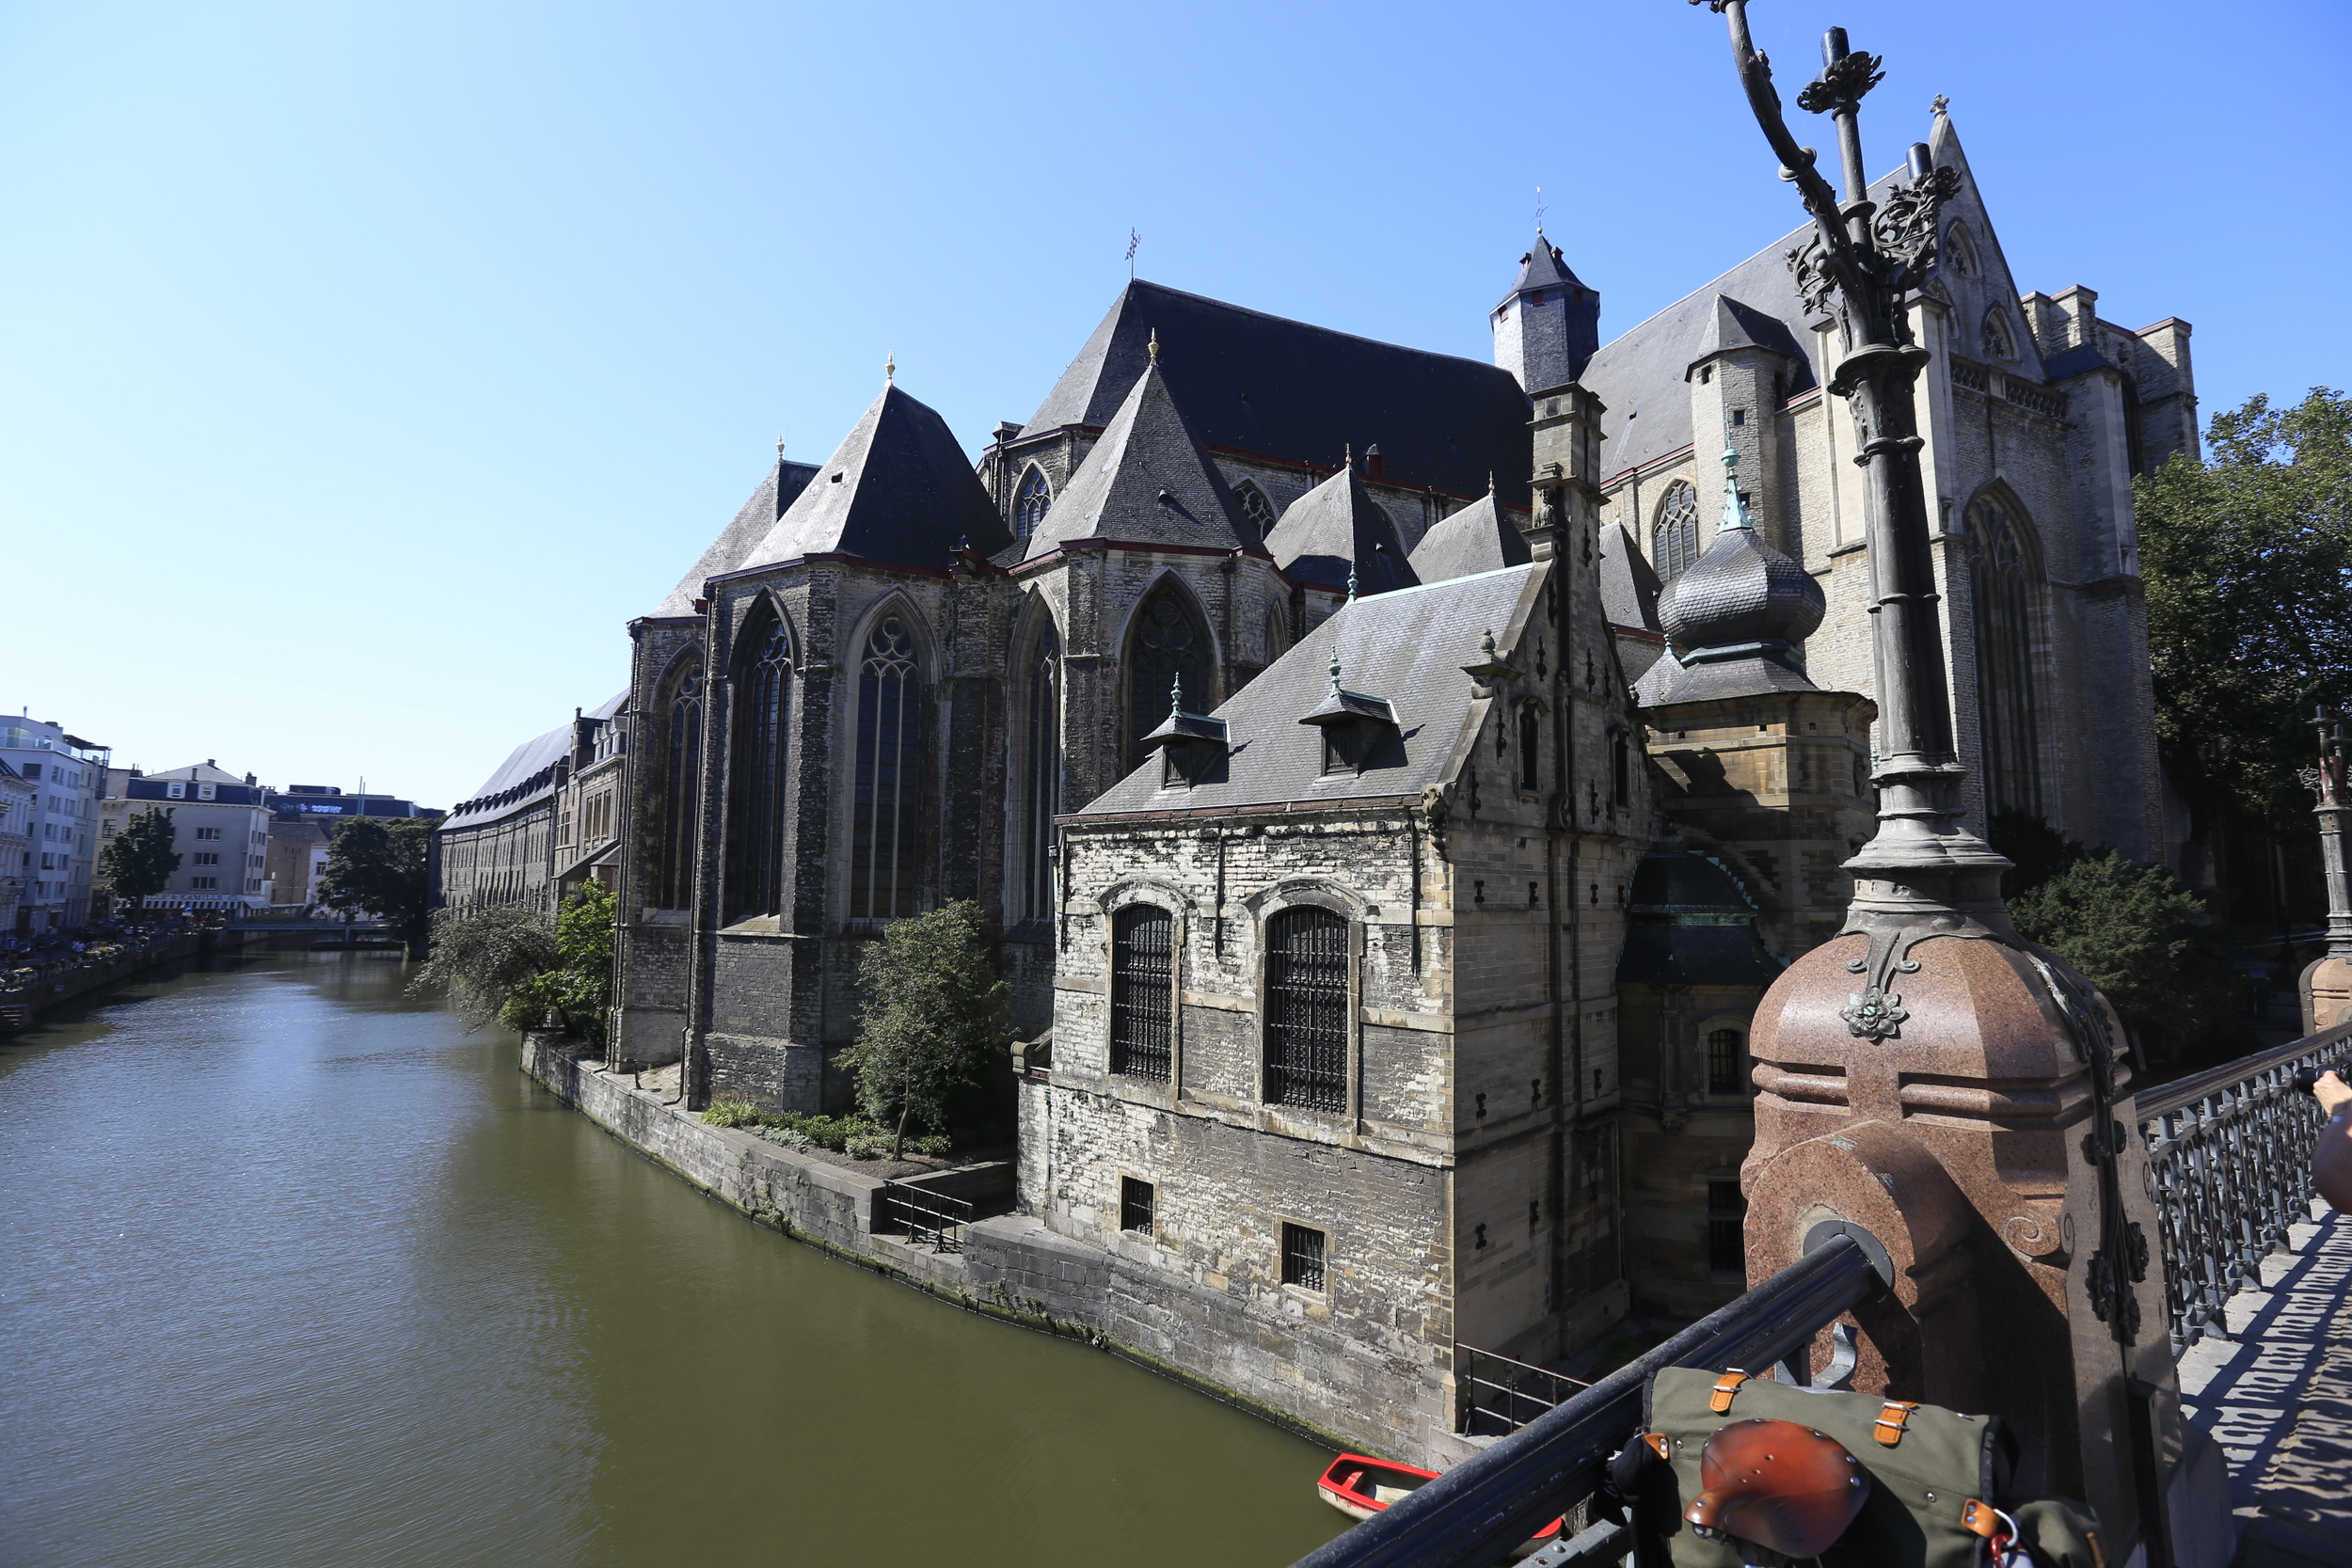 ghent, belgium, architecture photography, medieval architecture, canon, canon wide lens, canon 16-35mm, photography blog, cycling blog, bikepacking photography, shooting from the saddle